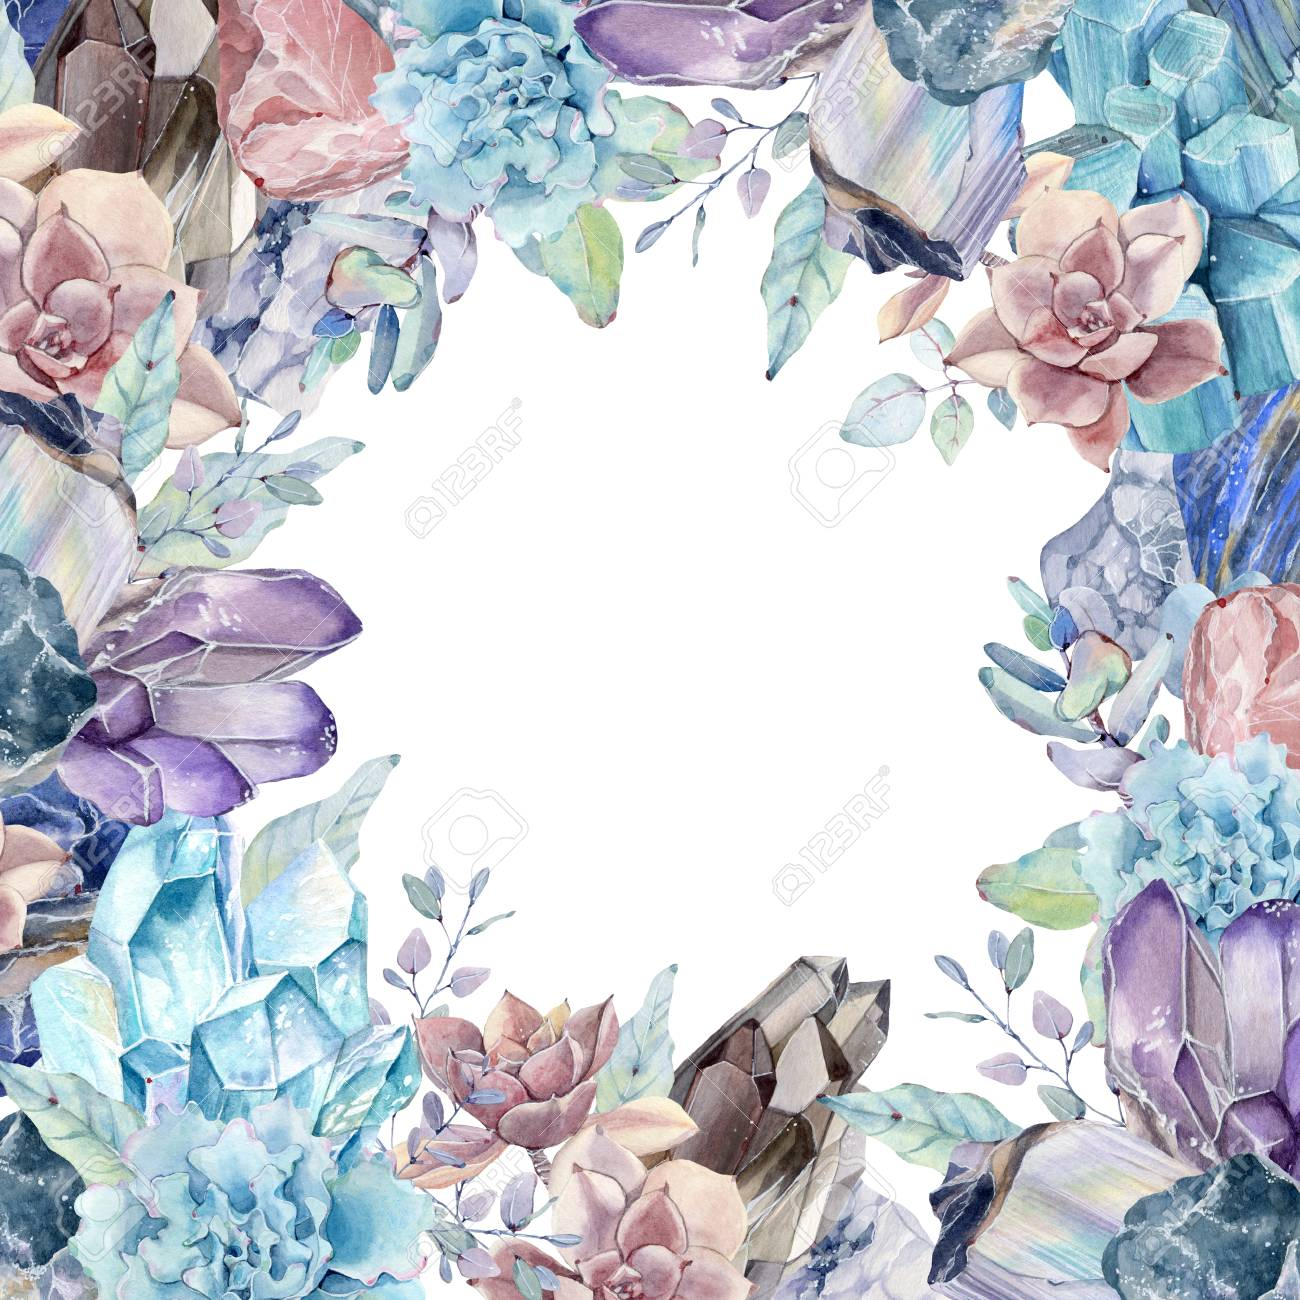 Watercolor Gemstones And Succulents Background Perfect For Elegant Stock Photo Picture And Royalty Free Image Image 89883984